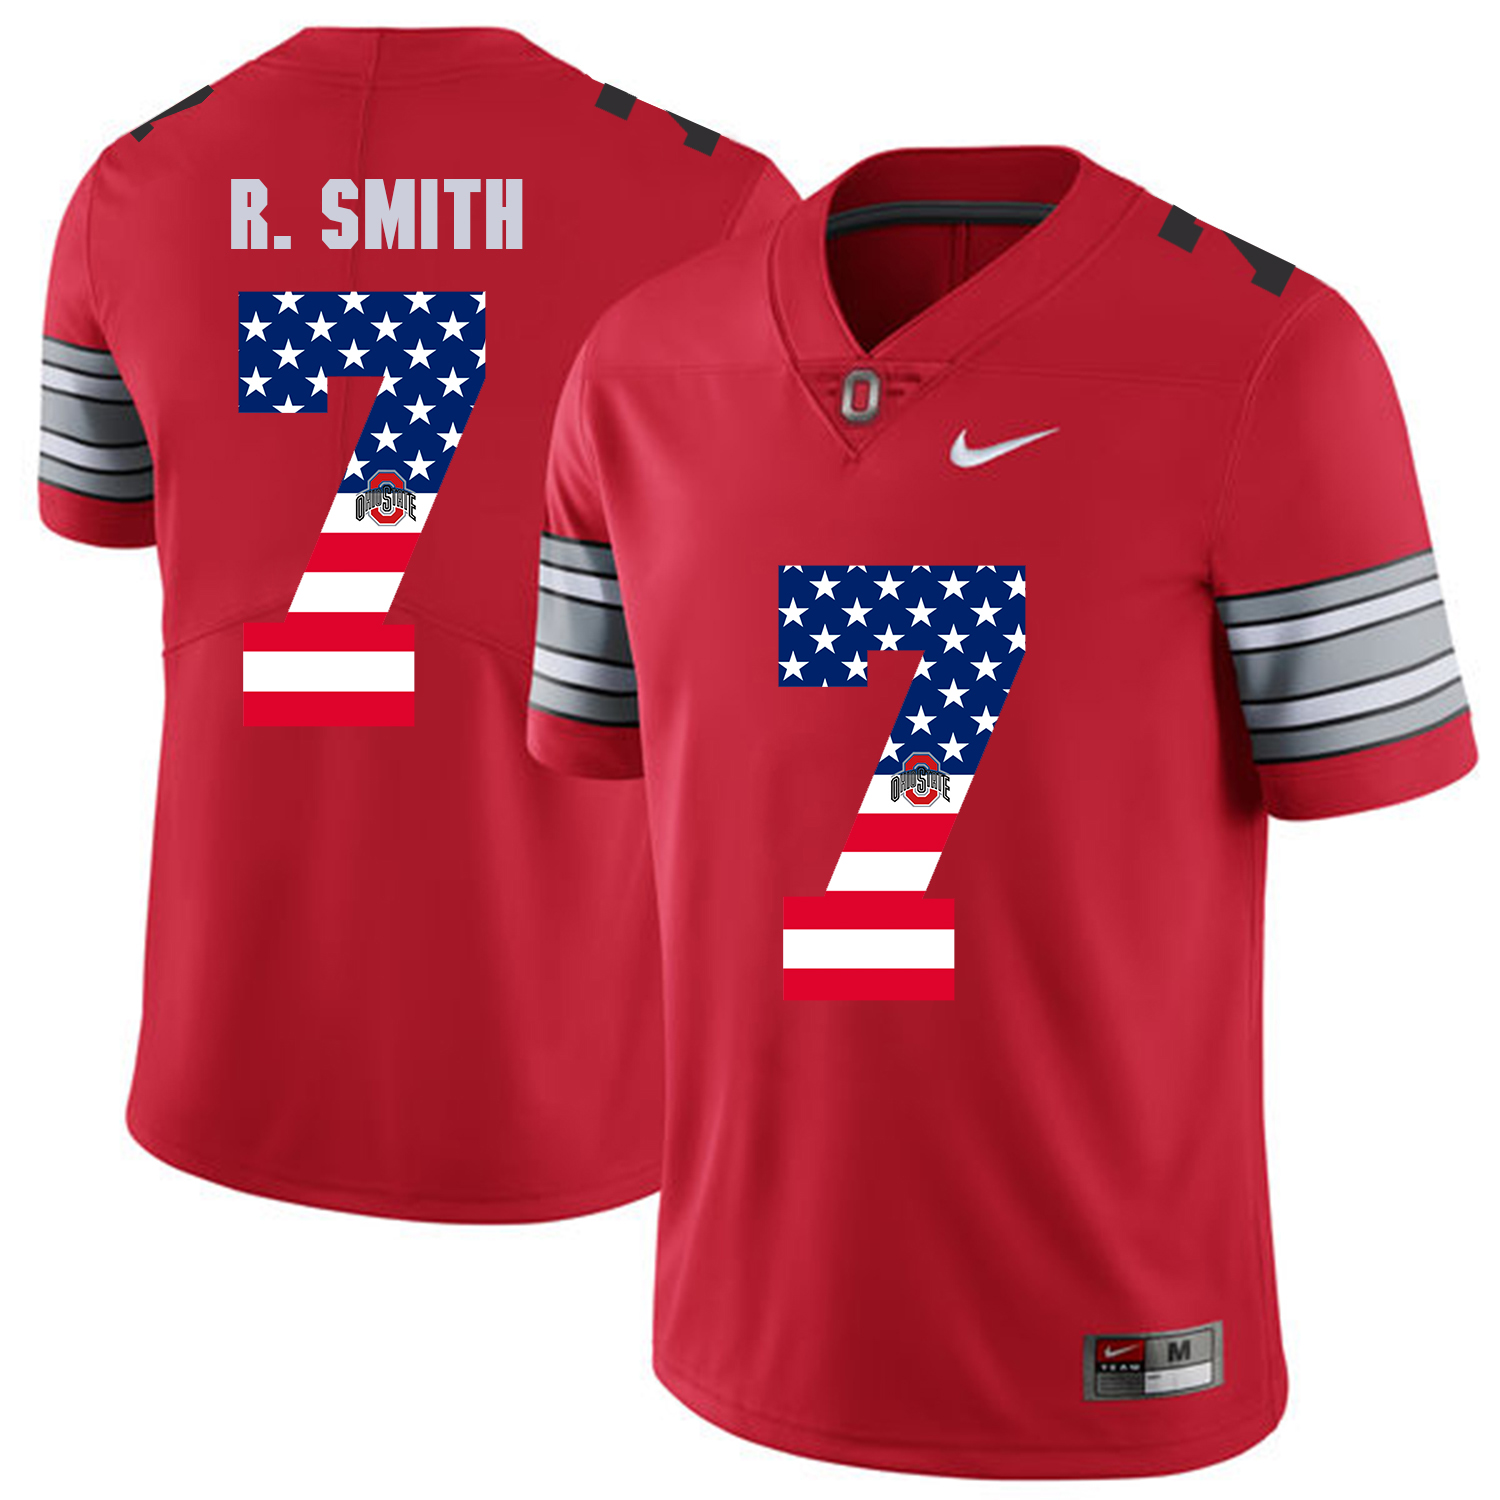 Men Ohio State 7 R.Smith Red Flag Customized NCAA Jerseys